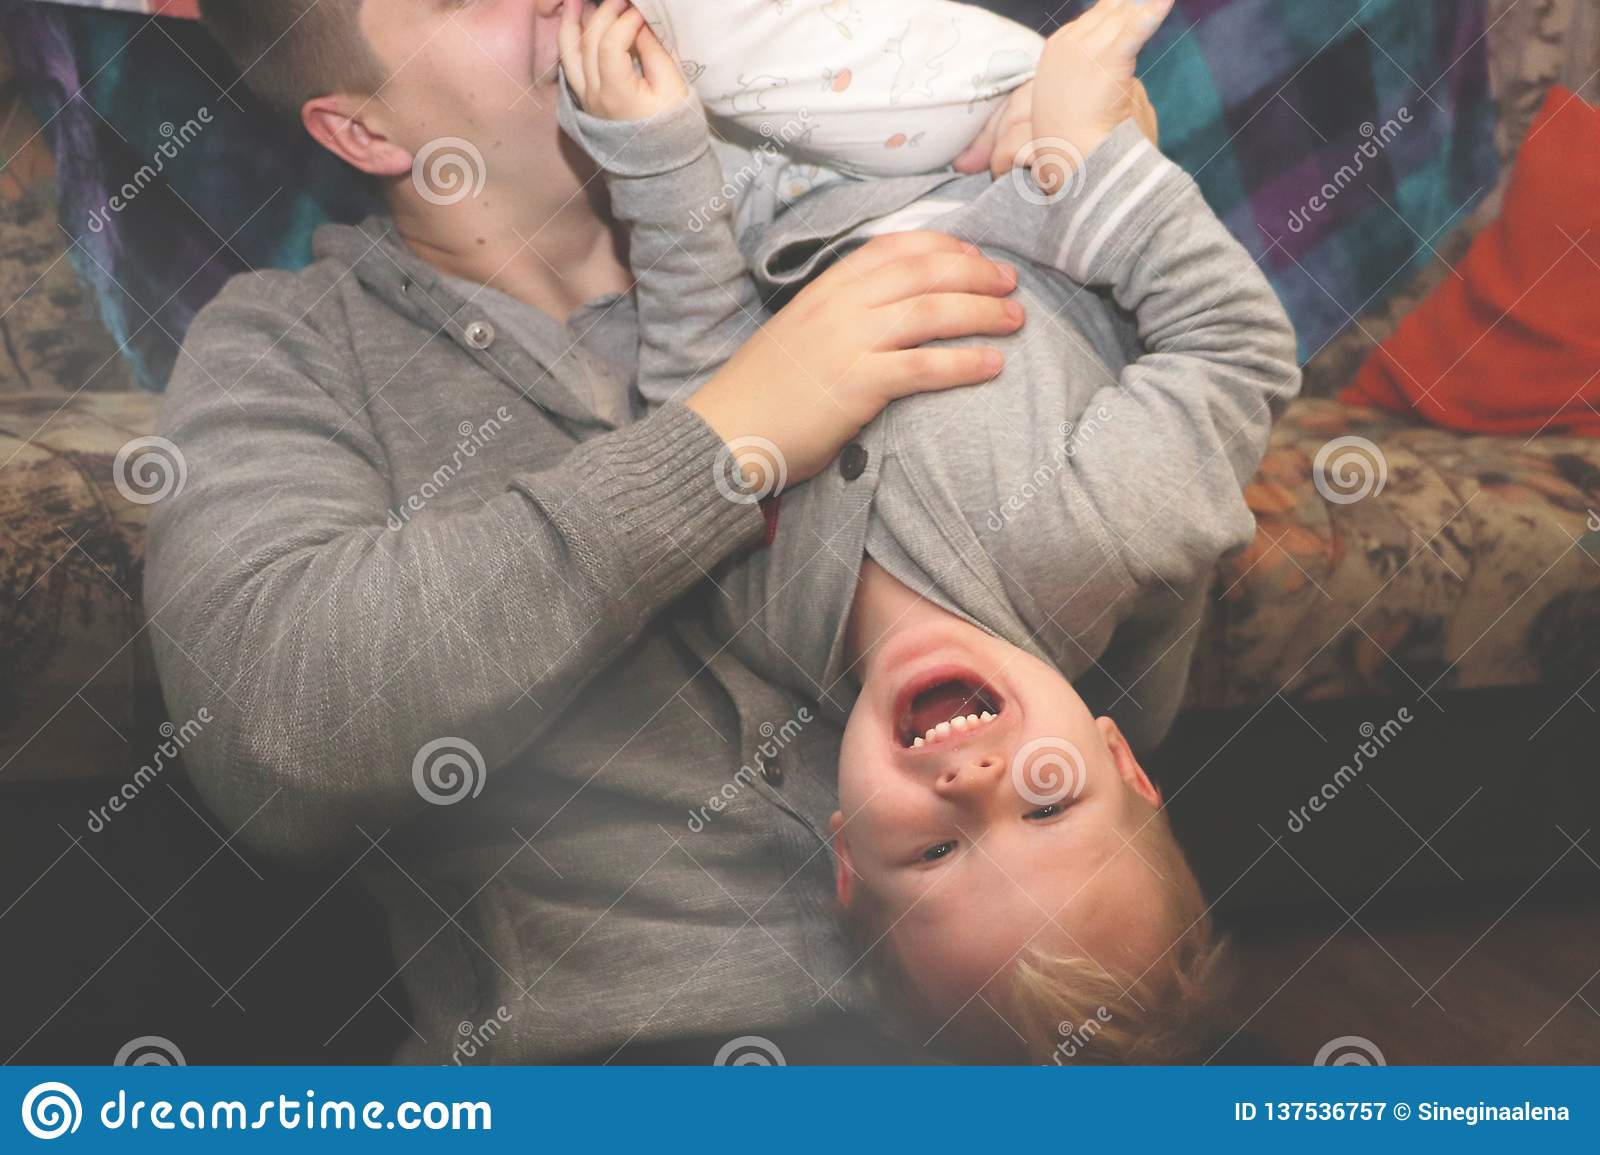 Dad and son play, indulge. The father turned his son upside down, the child laughs